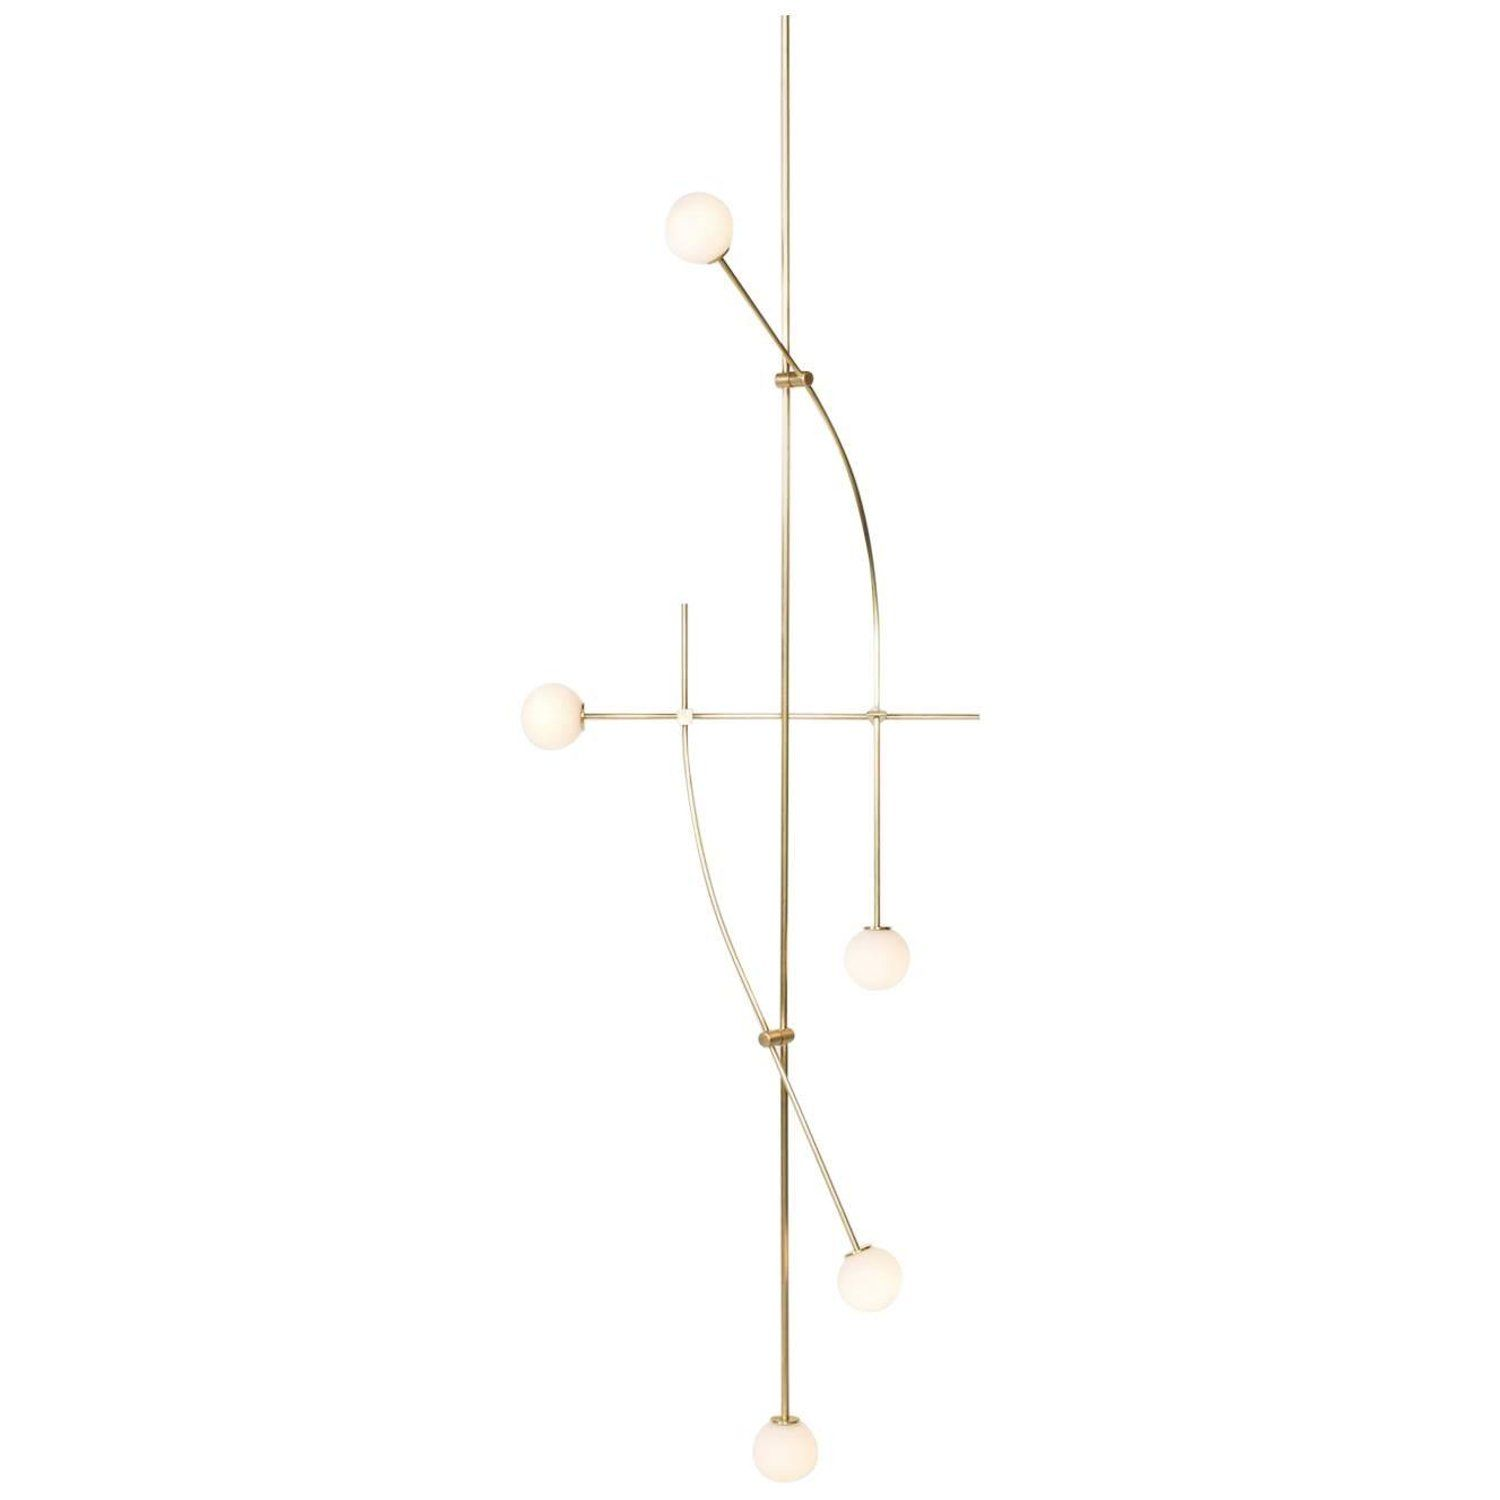 U tall tempo chandelier in satin brass with handblown glass globes